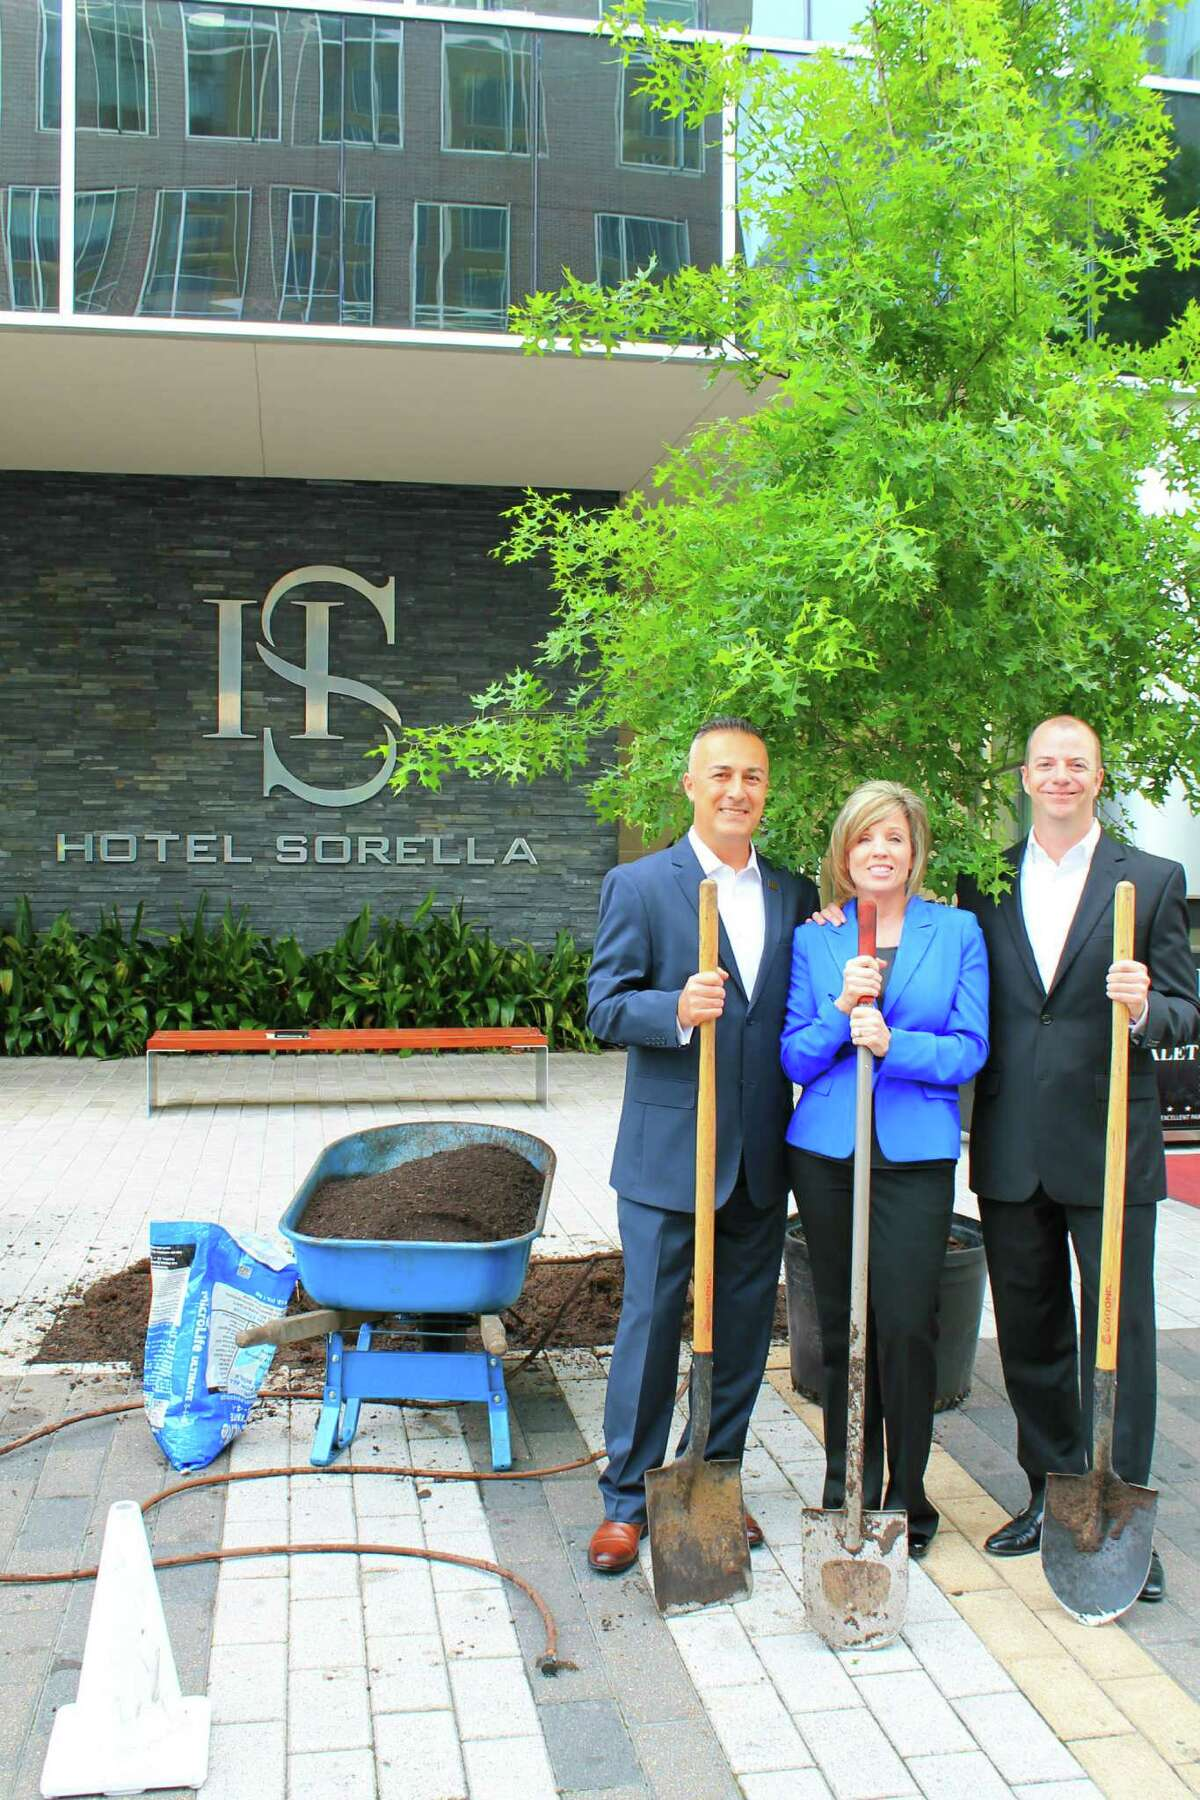 CityCentre's Hotel Sorella now has a new tree. Safet Dokara, left, director of operations; Nancy Alonzo, director of sales and marketing, and Ryan Gullion, general manager, celebrated Earth Day by planting a 14-foot red oak tree at the entrance to the property April 22. This effort kicks off an annual initiative to plant a tree each Earth Day within the CityCentre district.